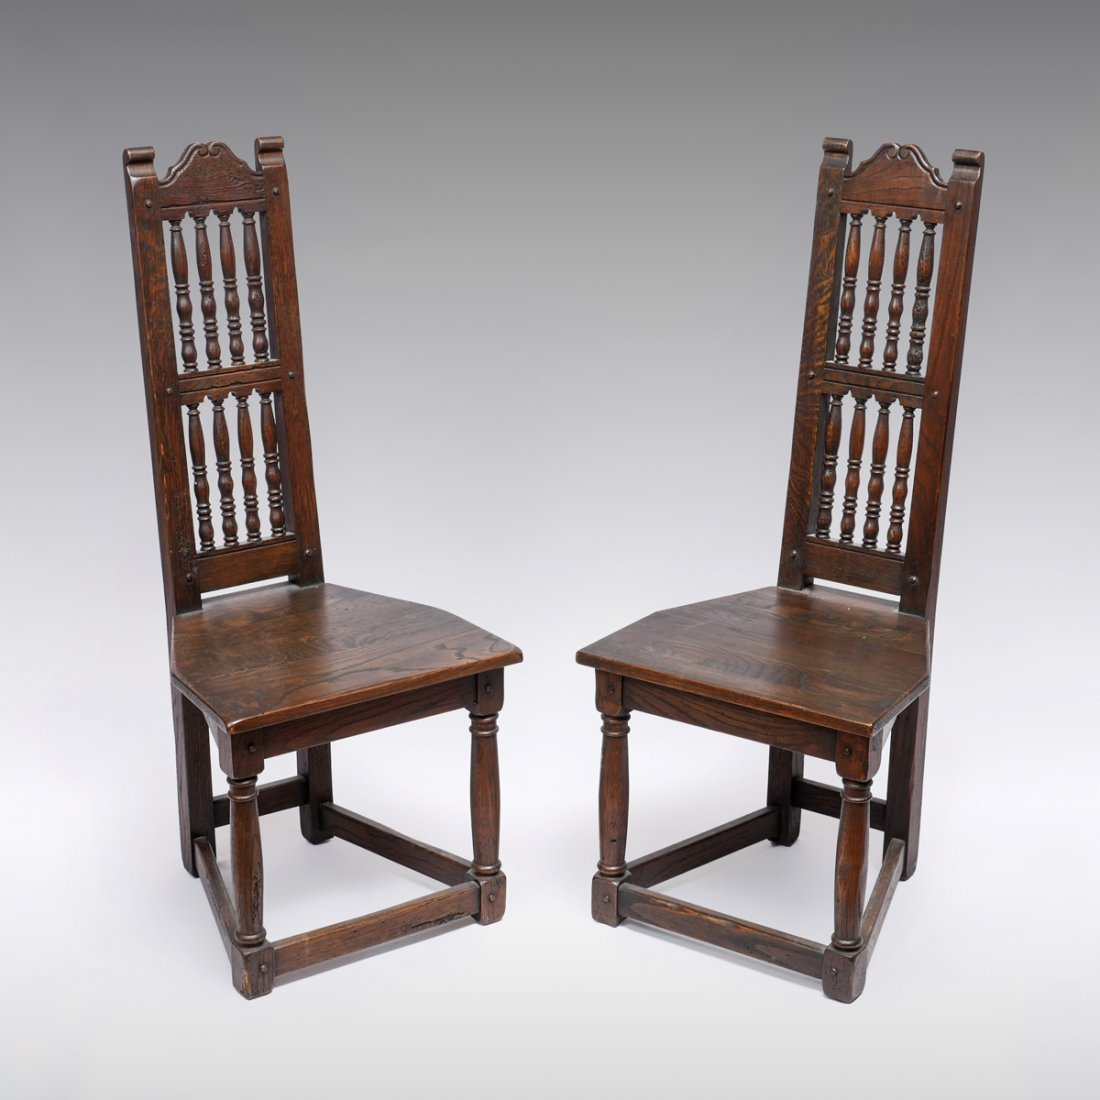 PAIR OF OAK ARTS AND CRAFTS SIDE CHAIRS